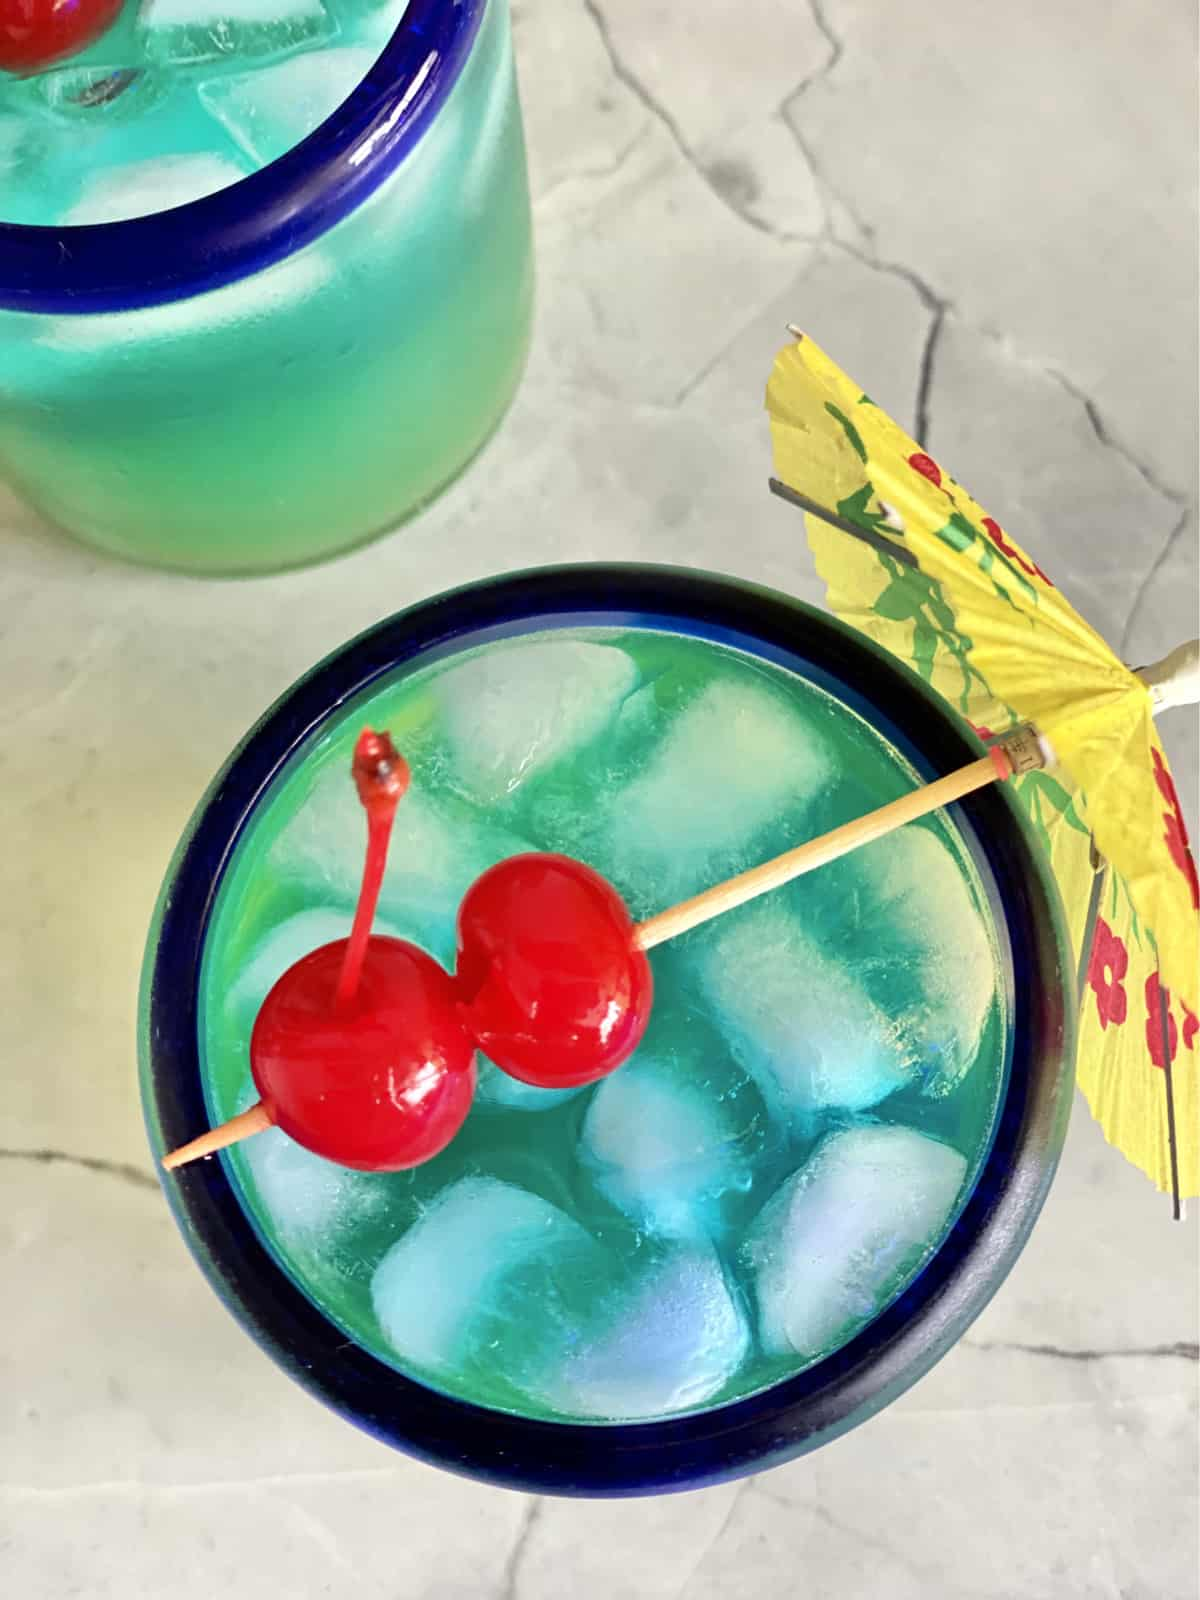 Top view of a blue drink with 2 maraschino cherries on top strung through a paper umbrella.